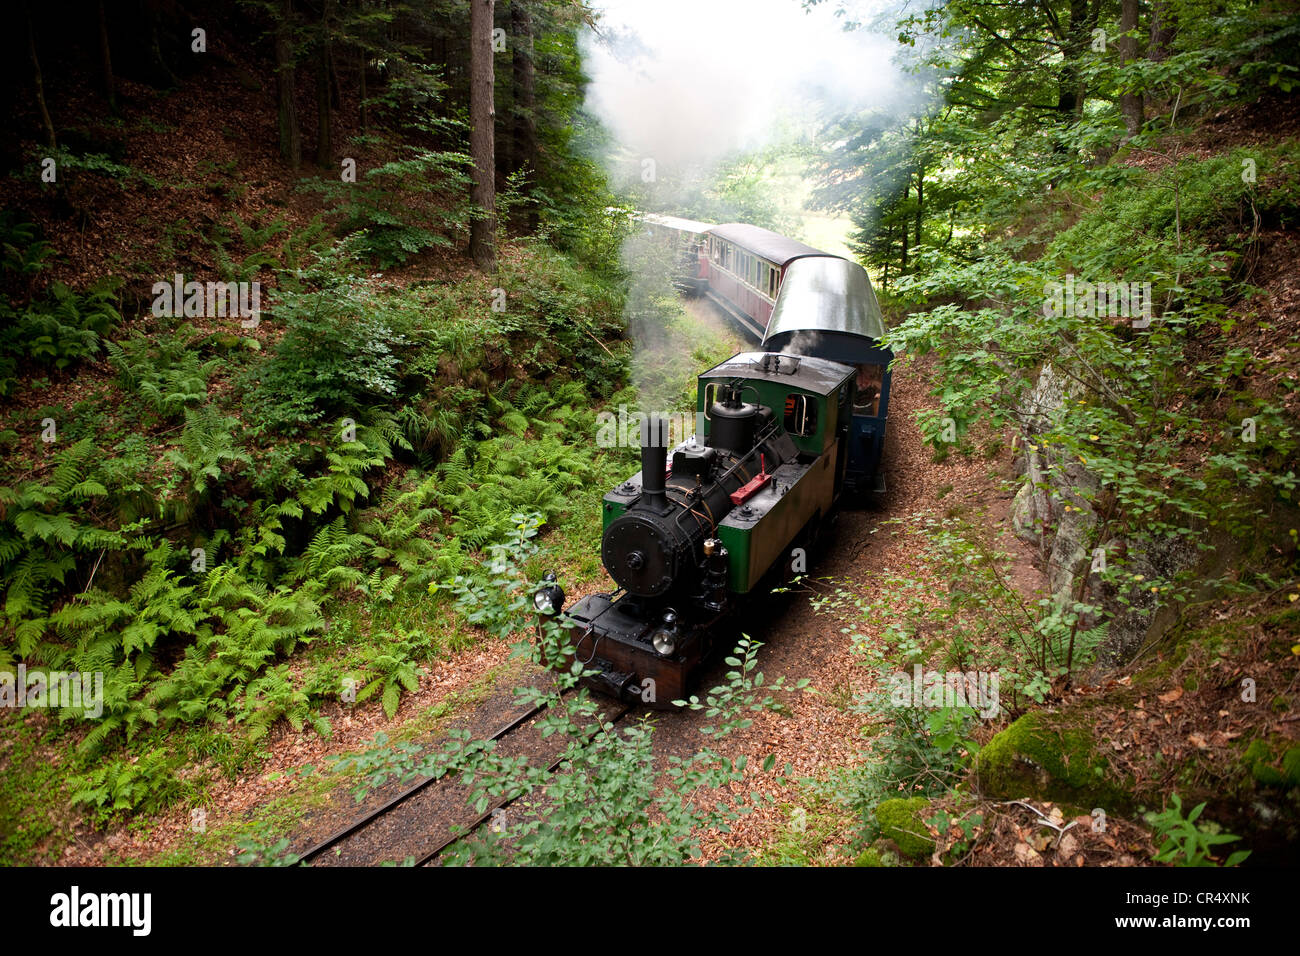 France, Moselle, Abreschviller, small train formerly forest train - Stock Image